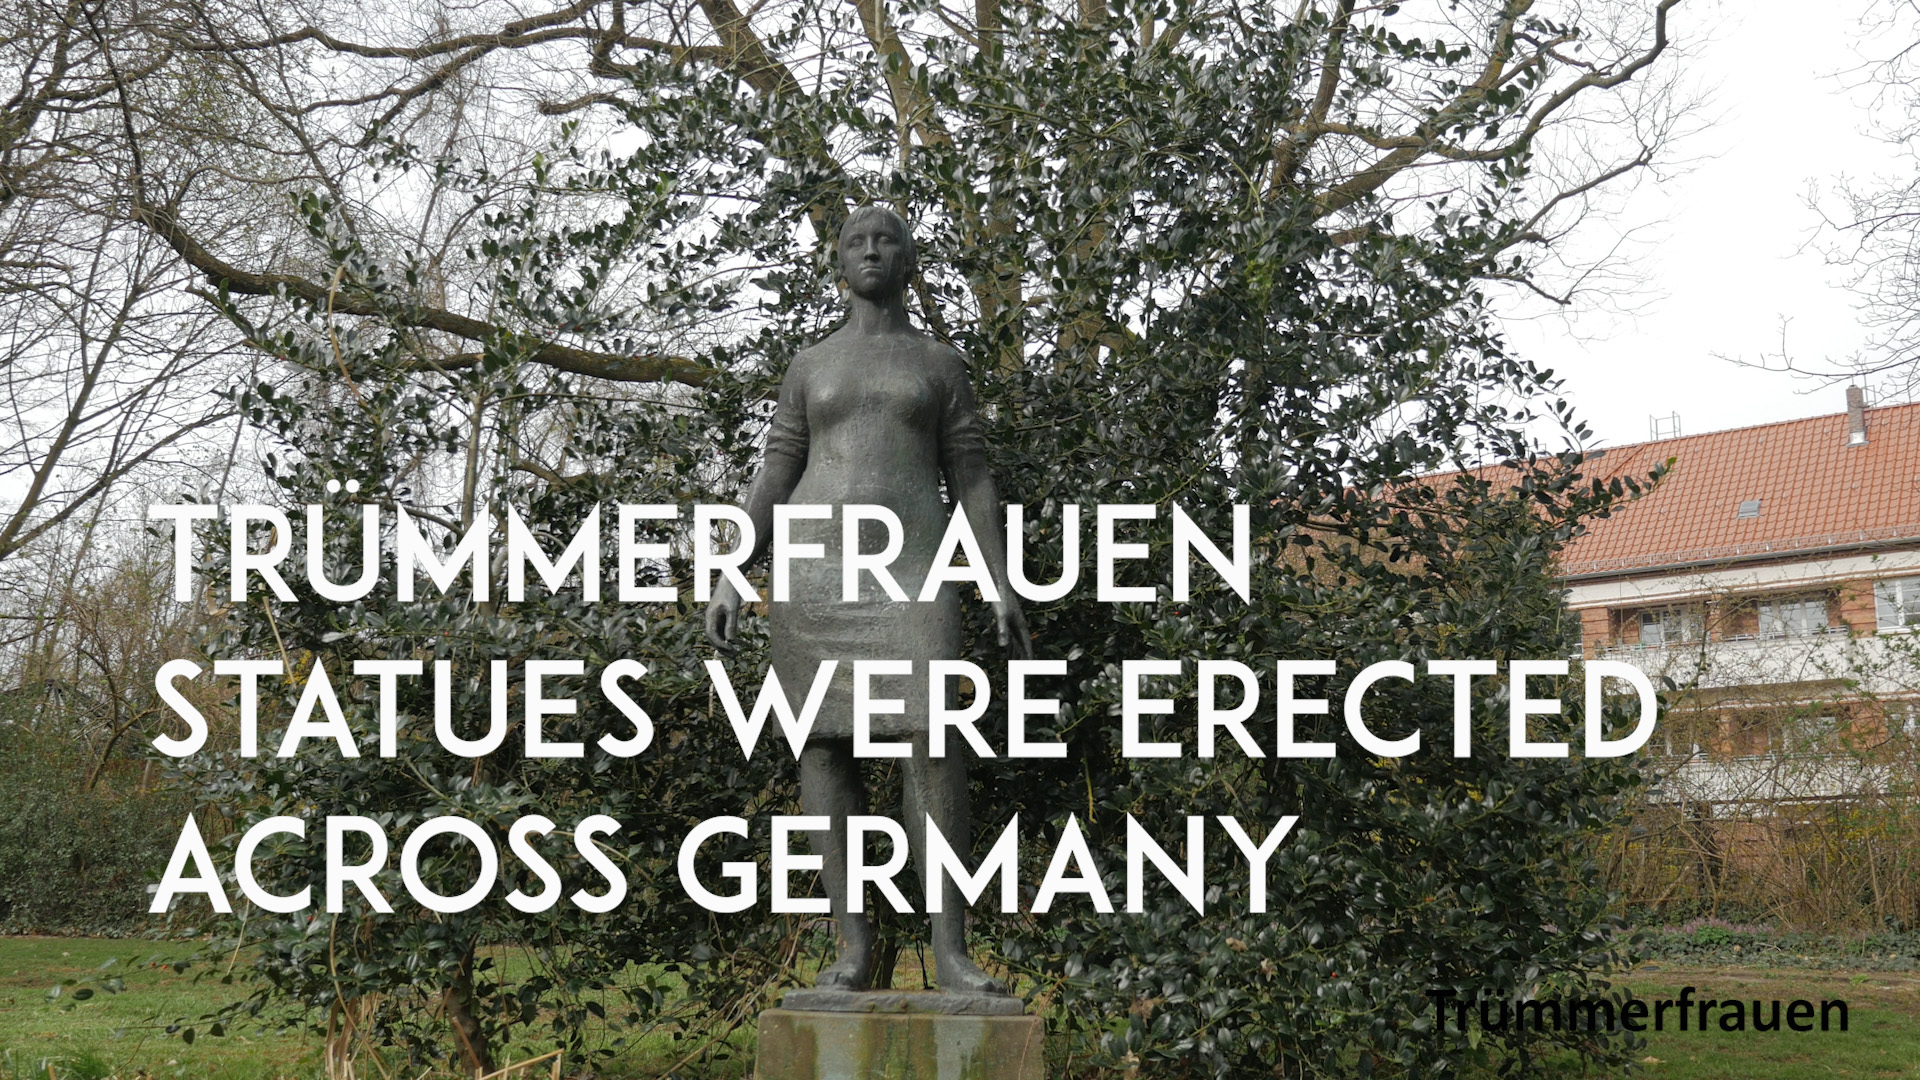 Trummerfrauen erected